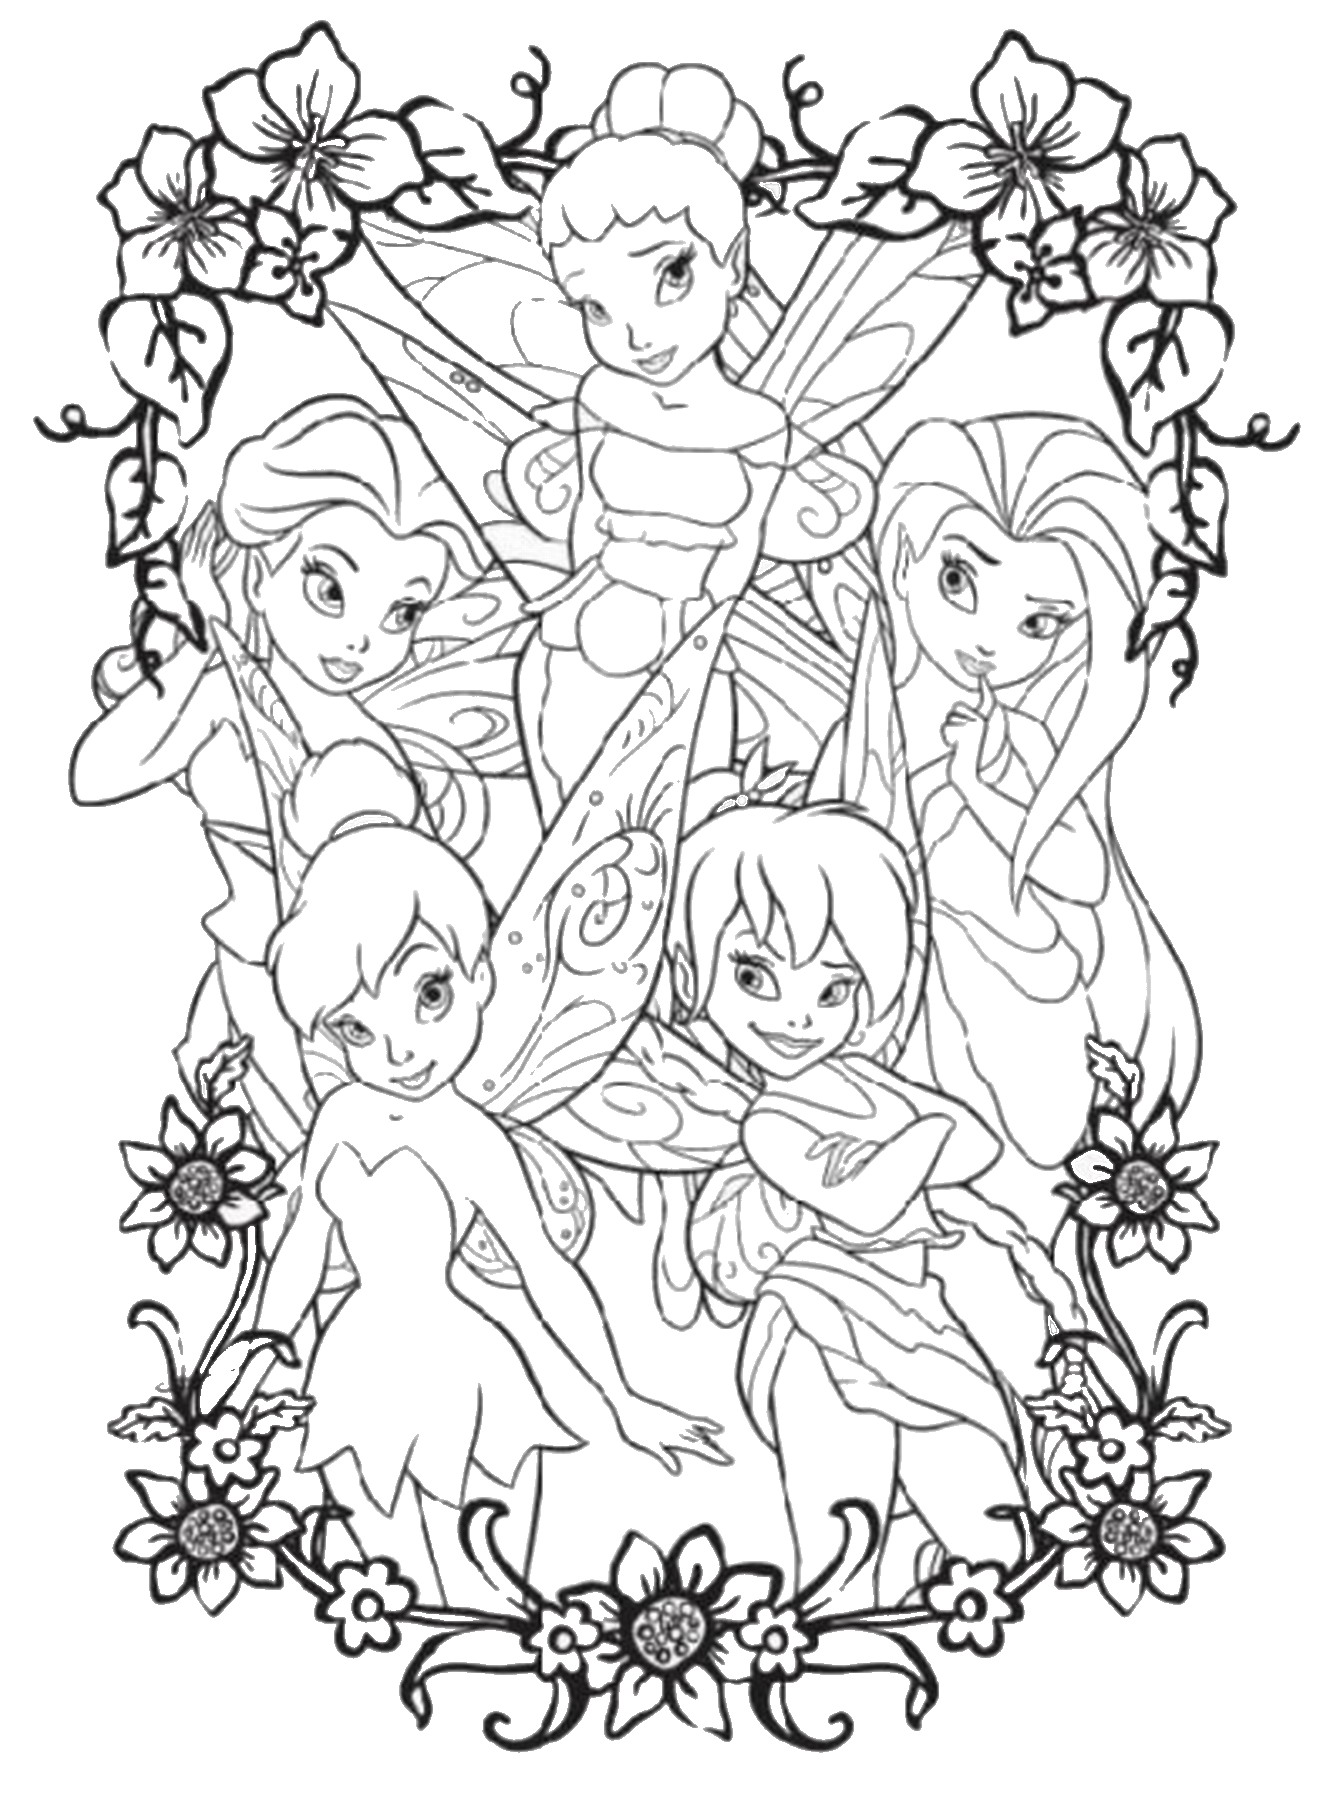 tinkerbell for coloring get this tinkerbell fairy coloring pages to print out for coloring tinkerbell for